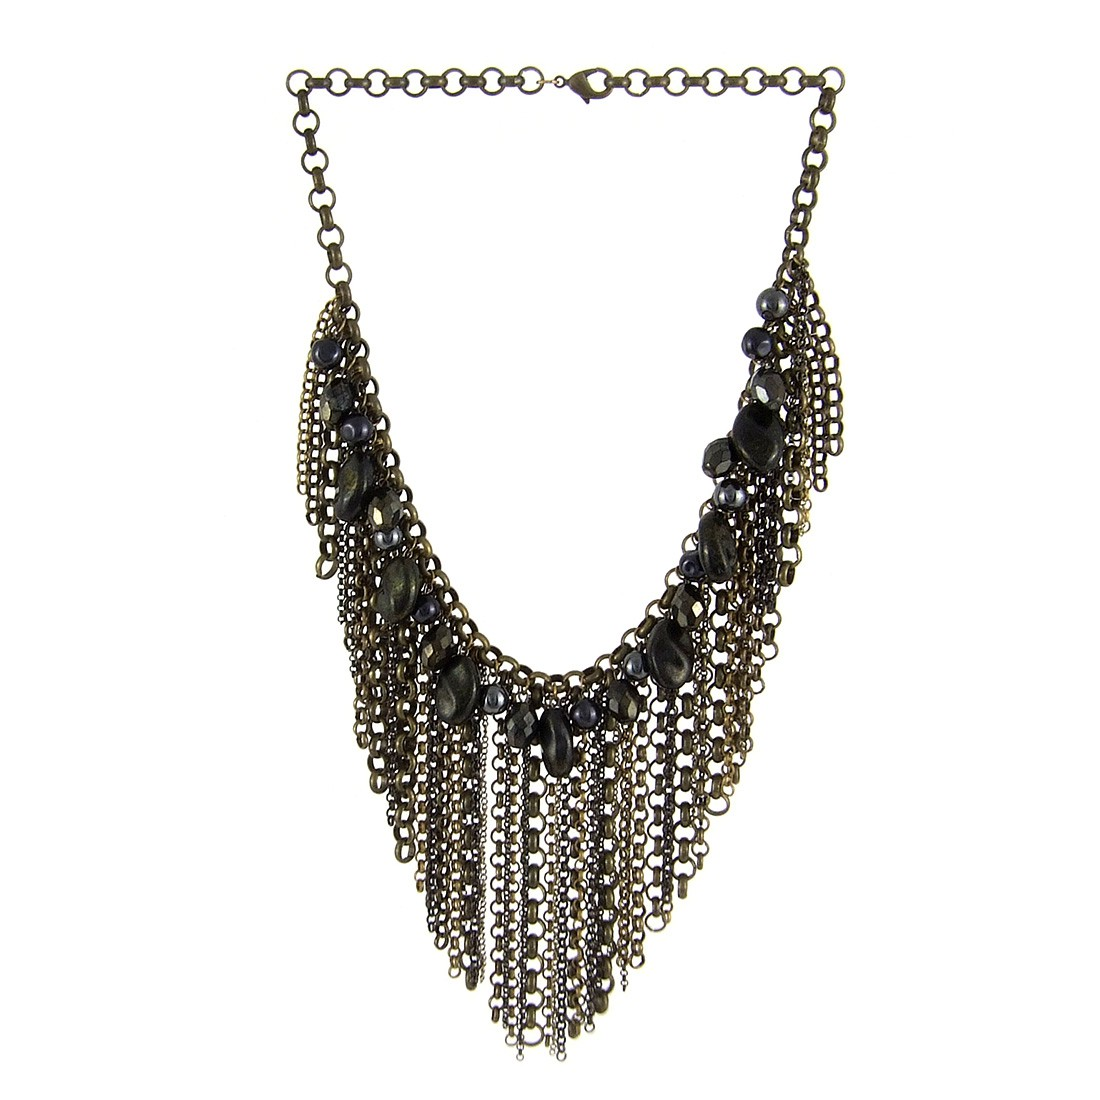 Collier chaine metal